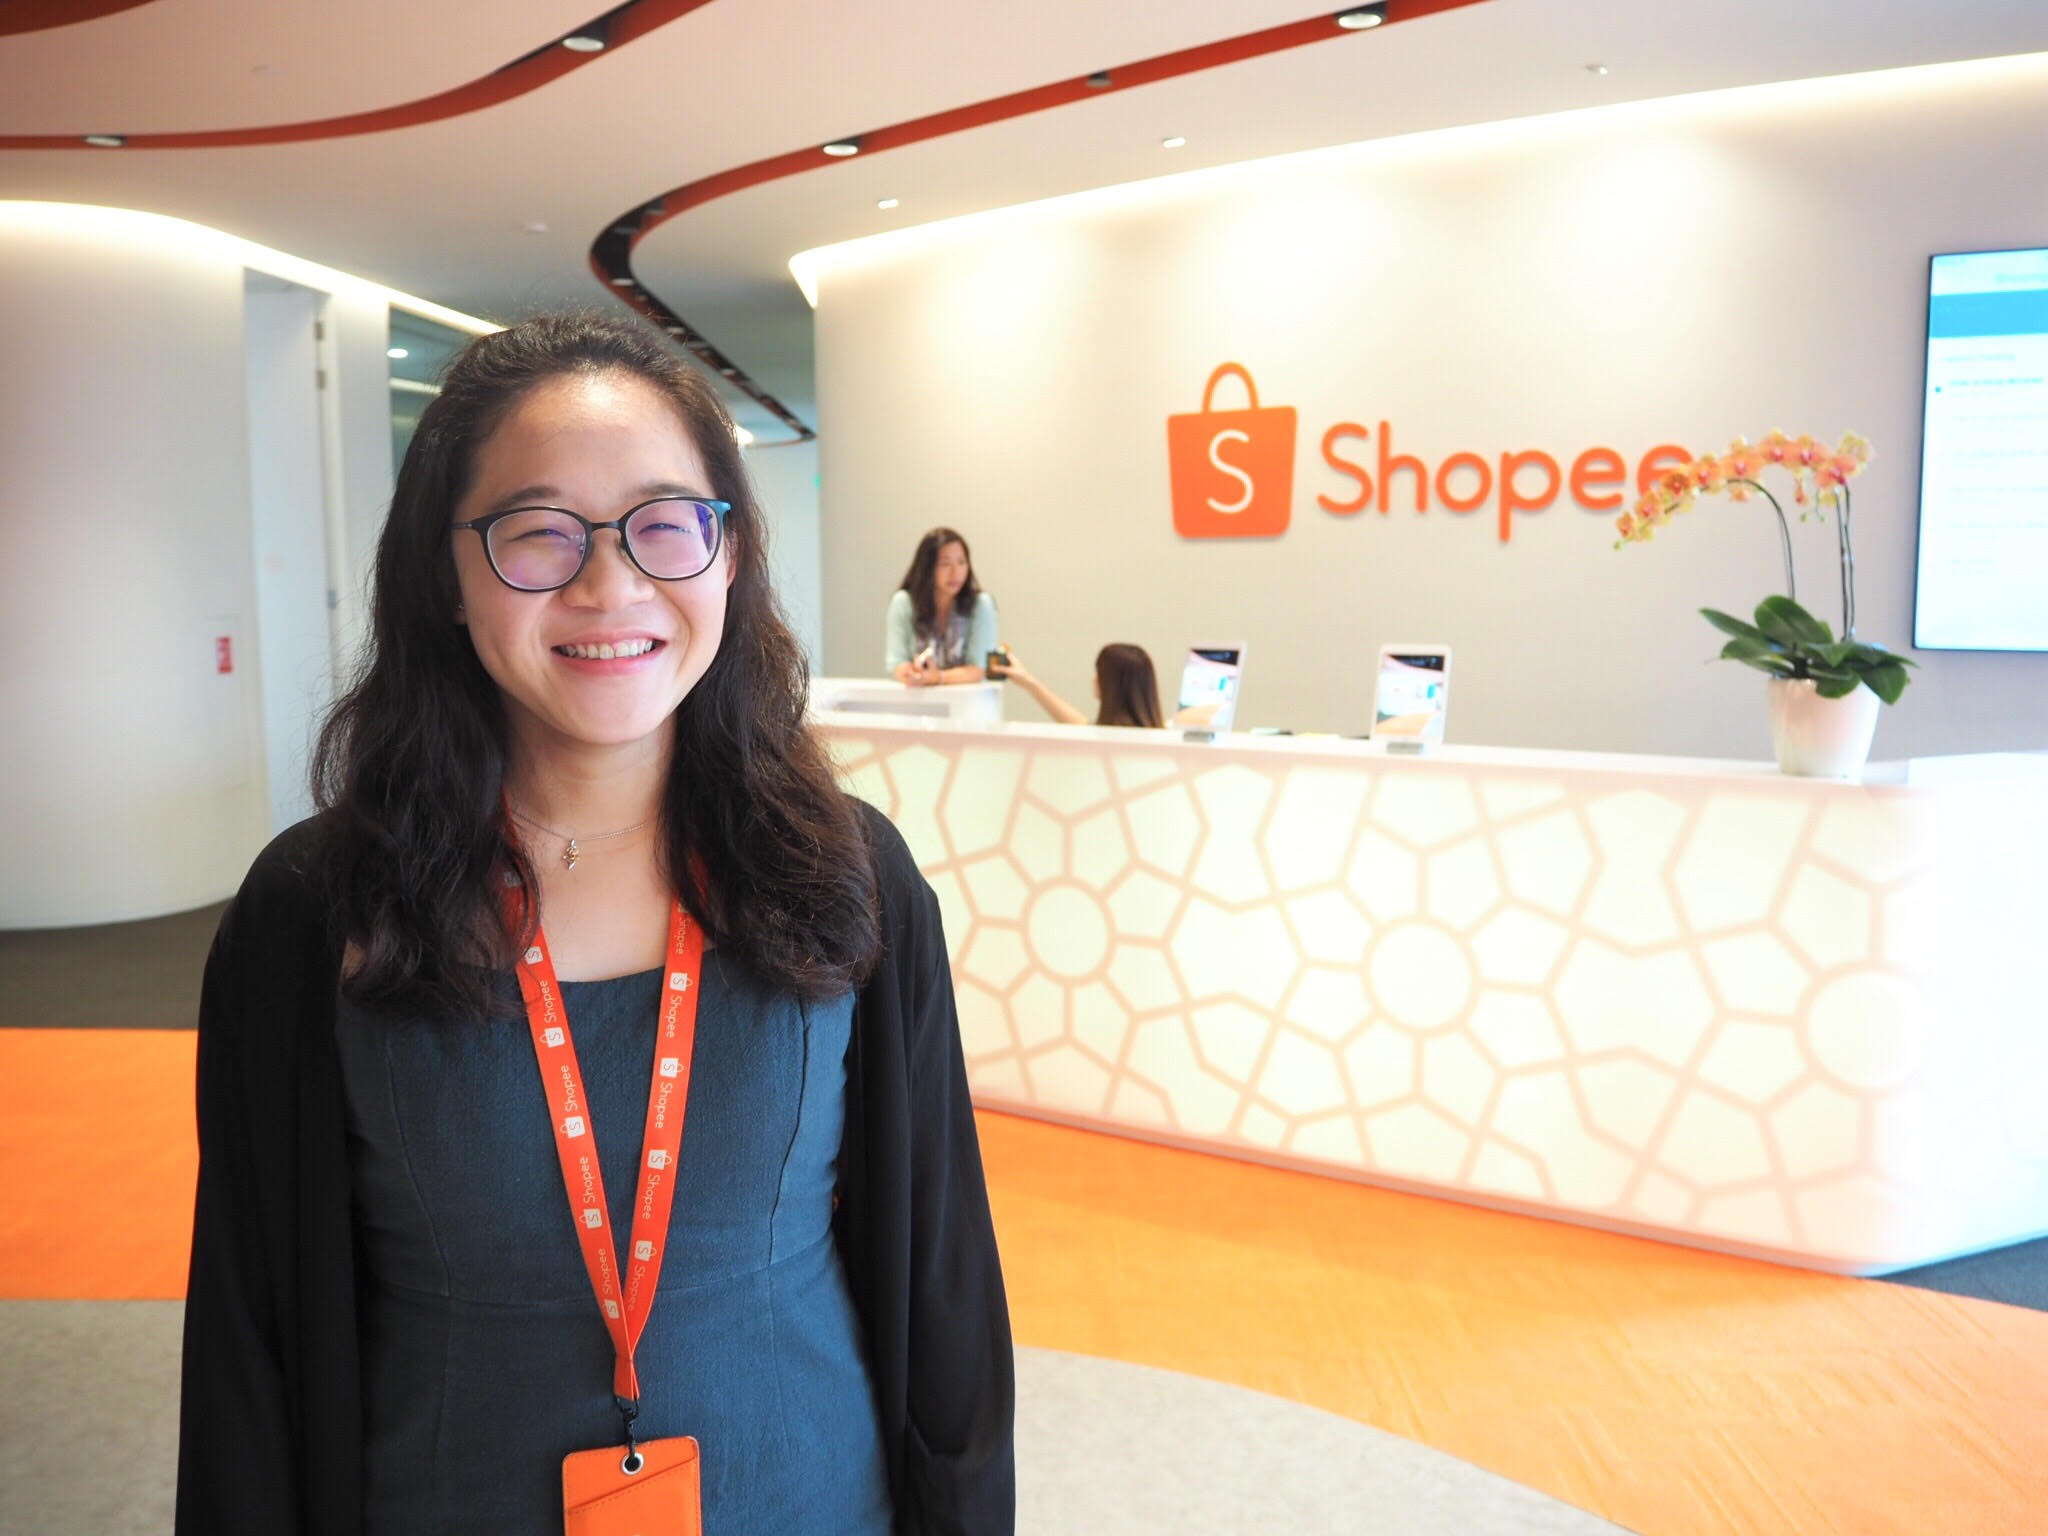 IAmShopee_Evelyn Ng_Regional Fraud Analyst